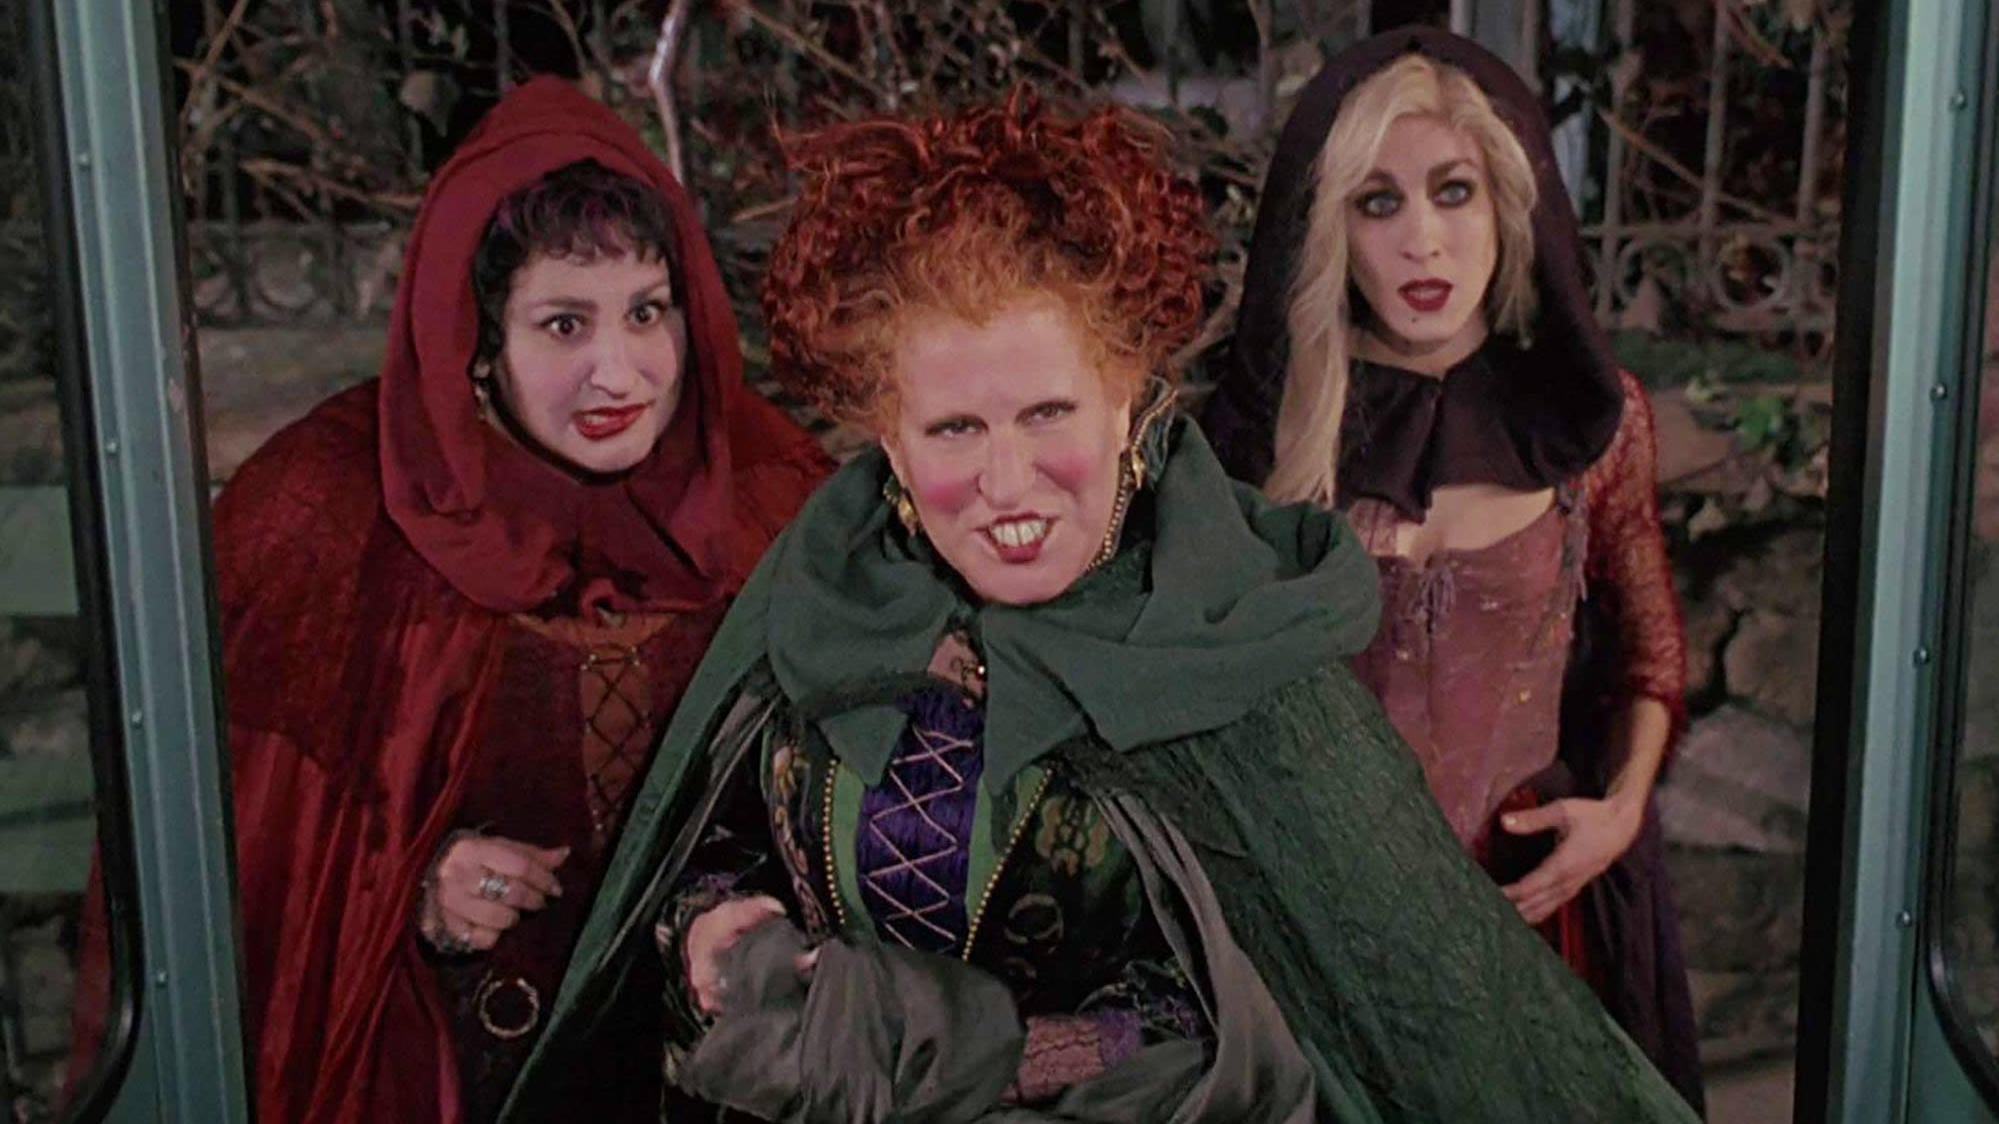 Disney+'s Hocus Pocus Sequel Has Found Its Director